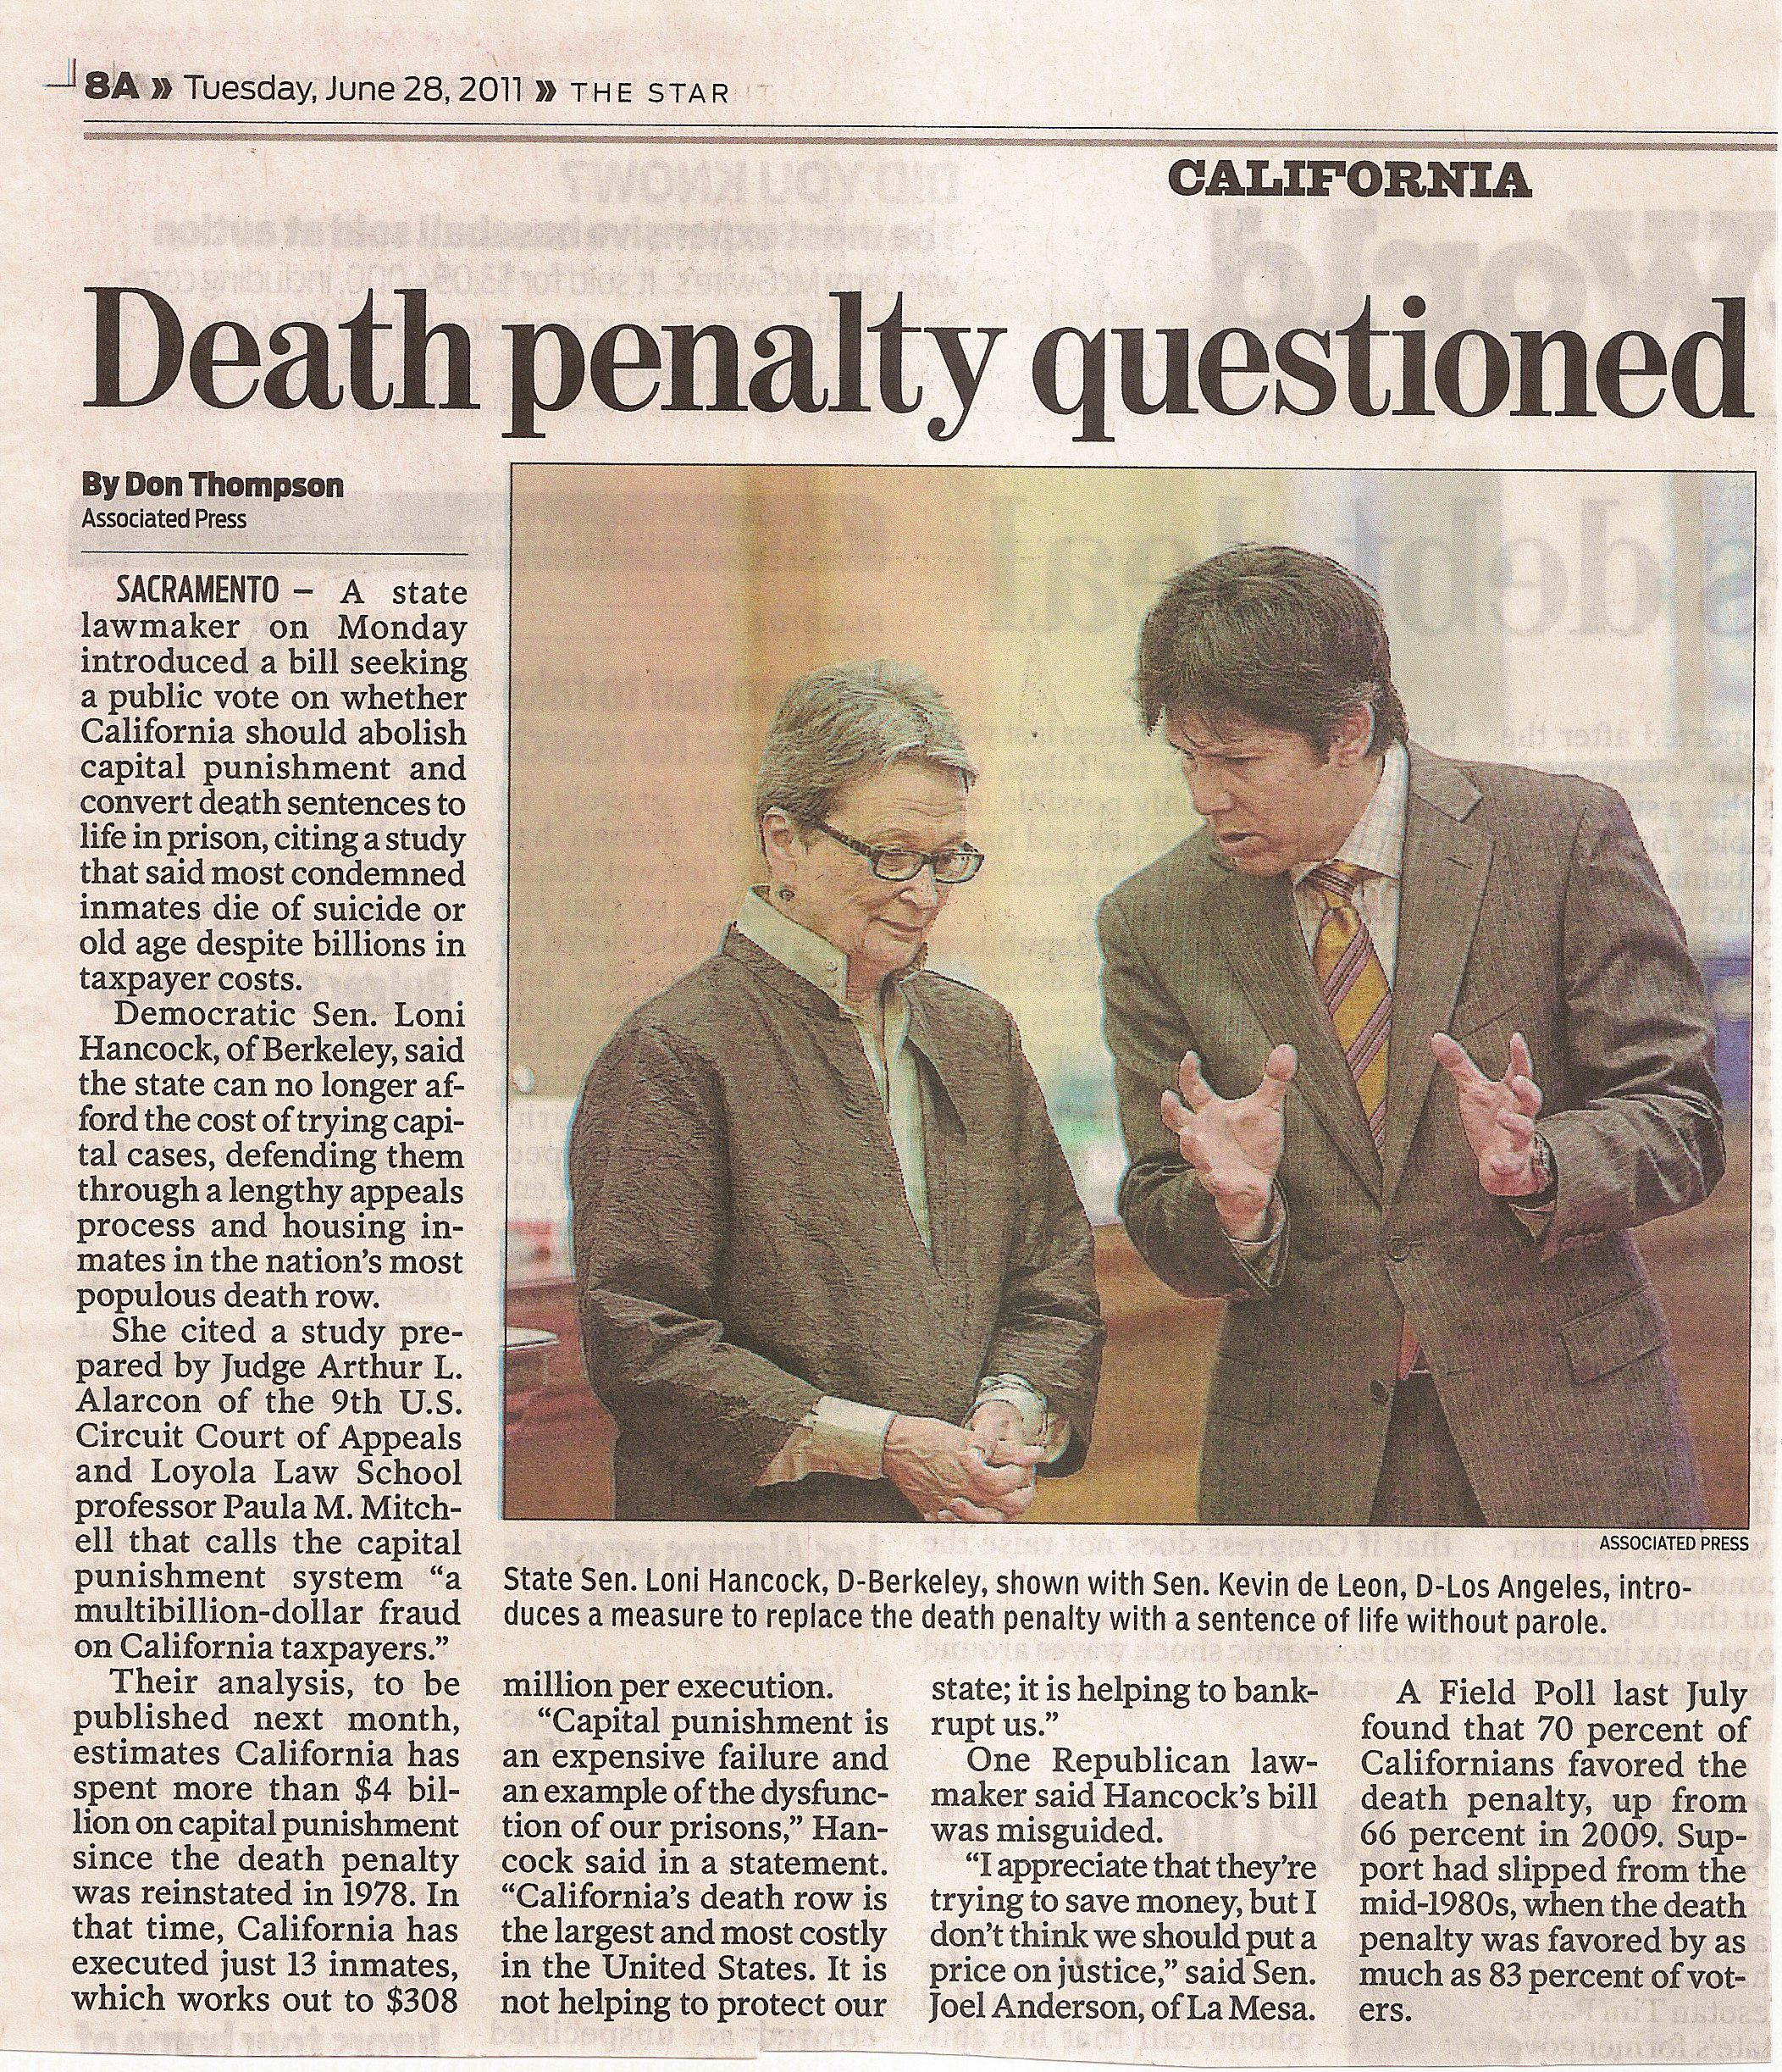 essay on the death penalty is wrong